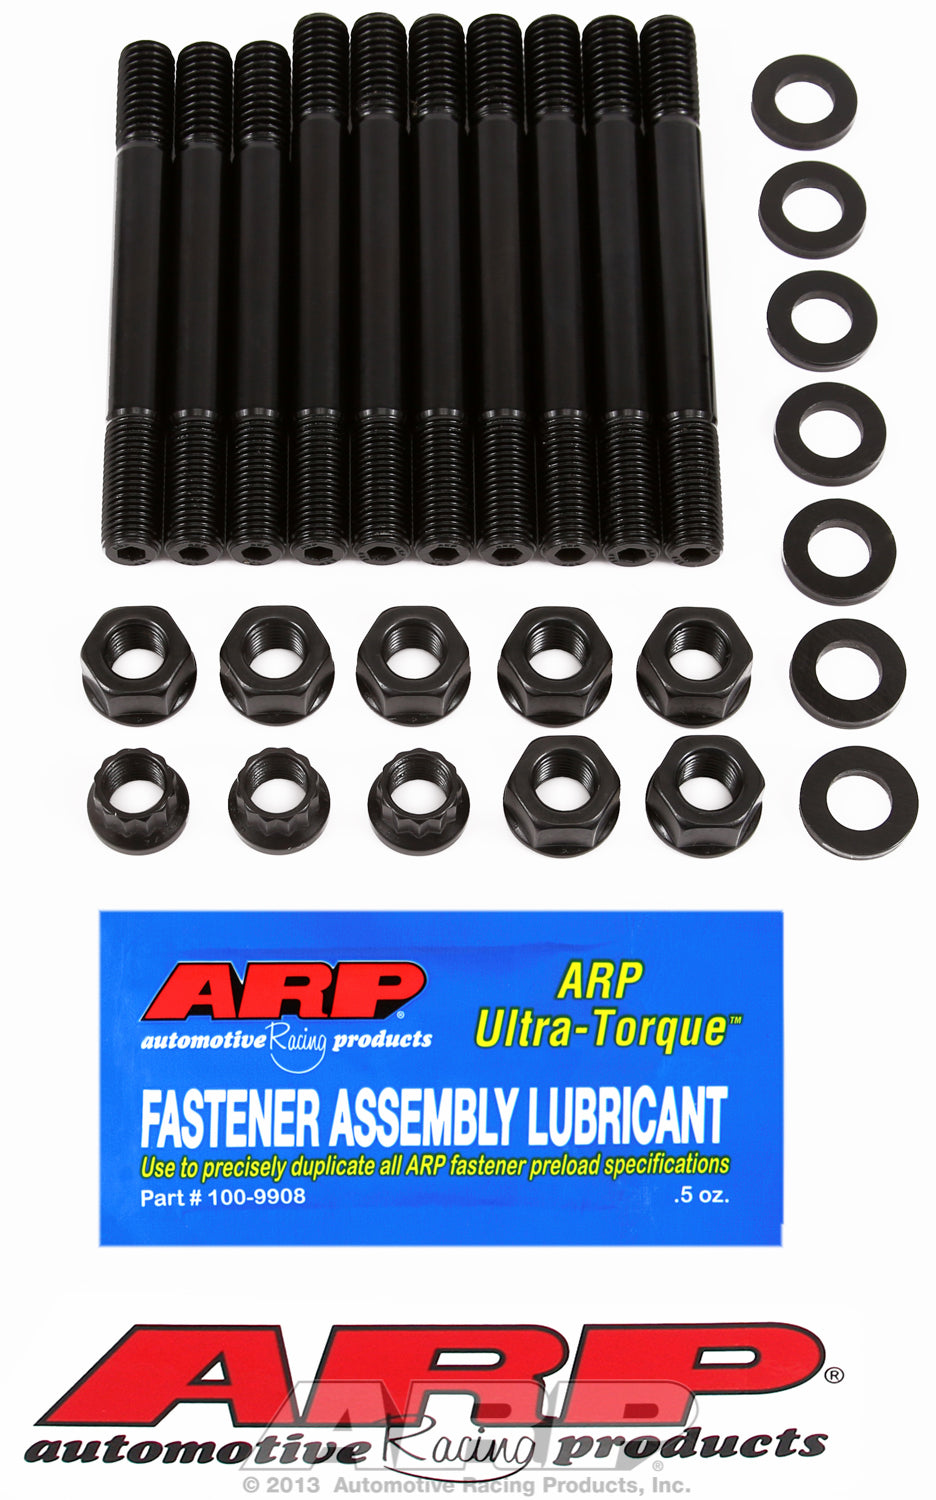 Main Stud Kit for Ford 289-302 cid with girdle (7 studs 1/2˝ longer)